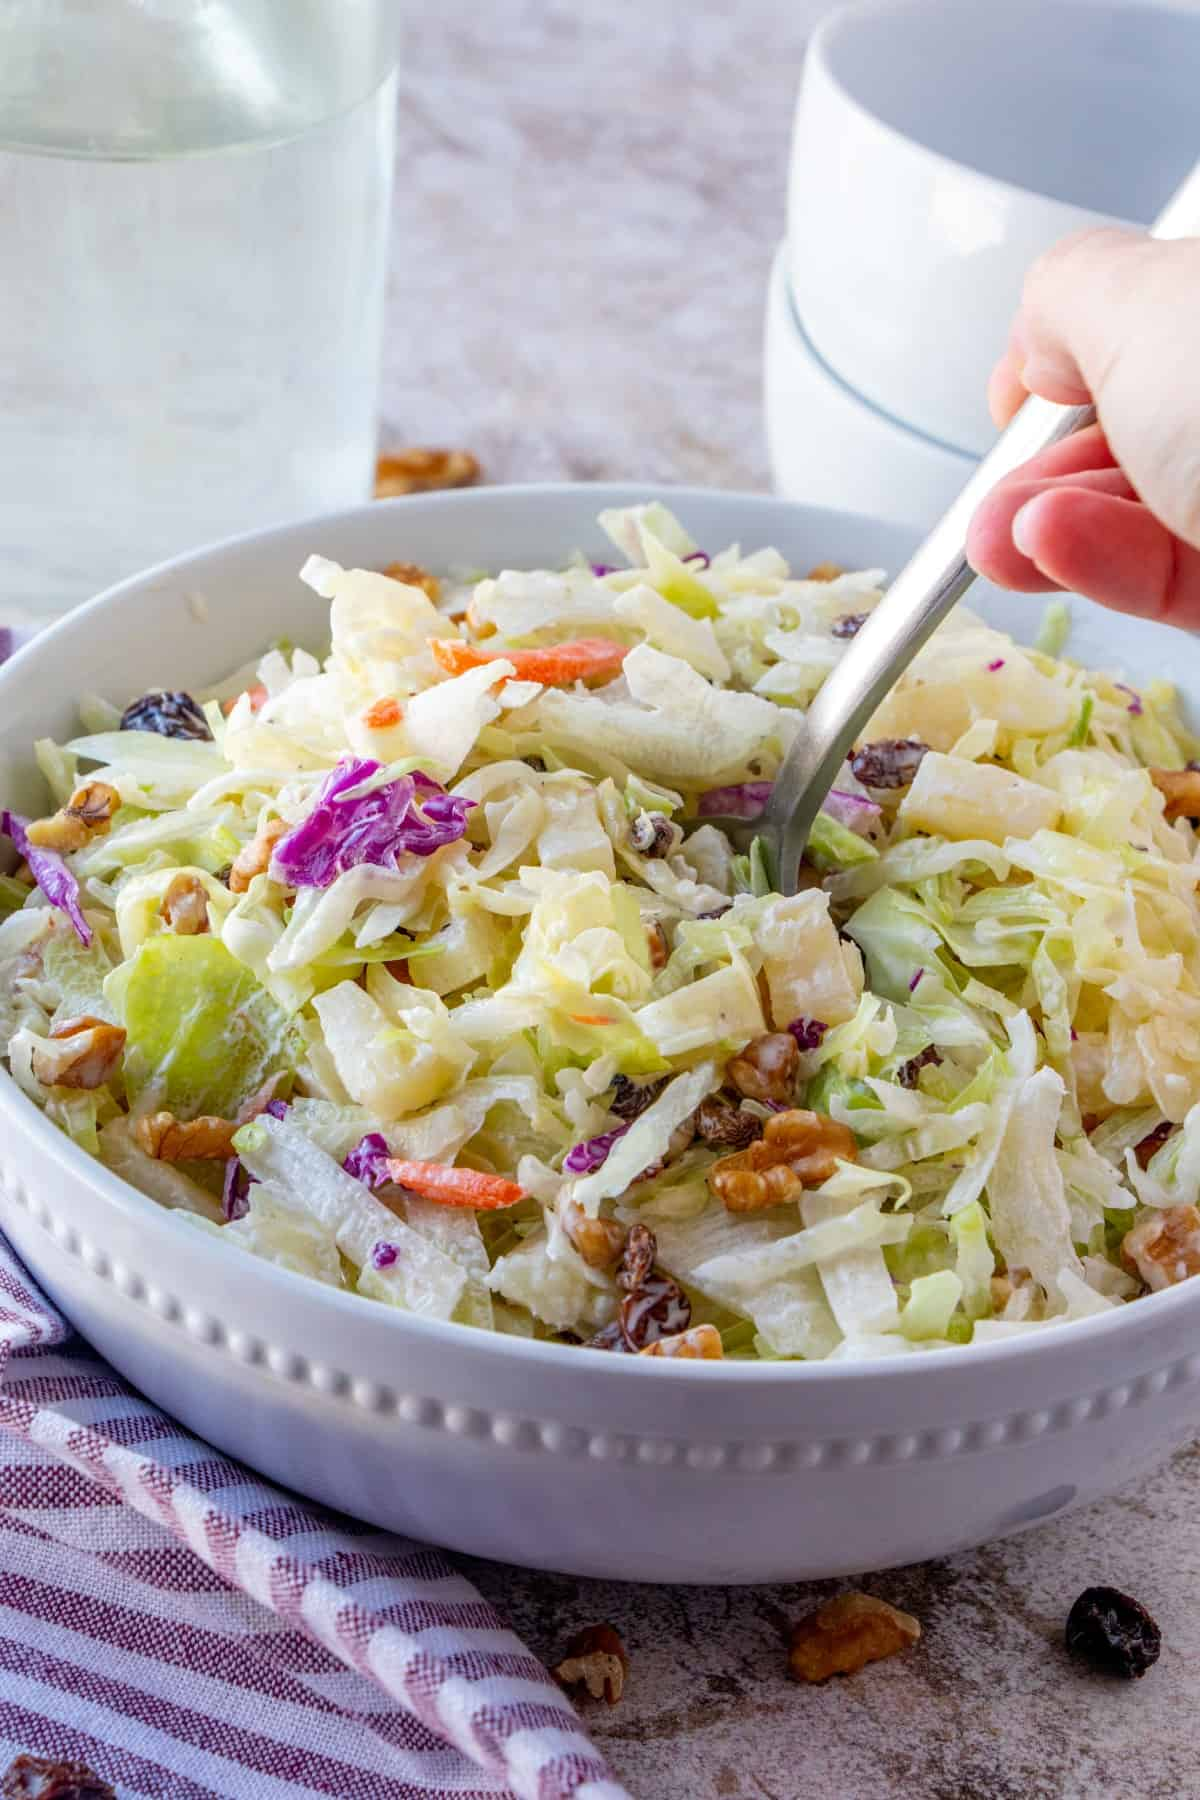 Going to spoon out coleslaw